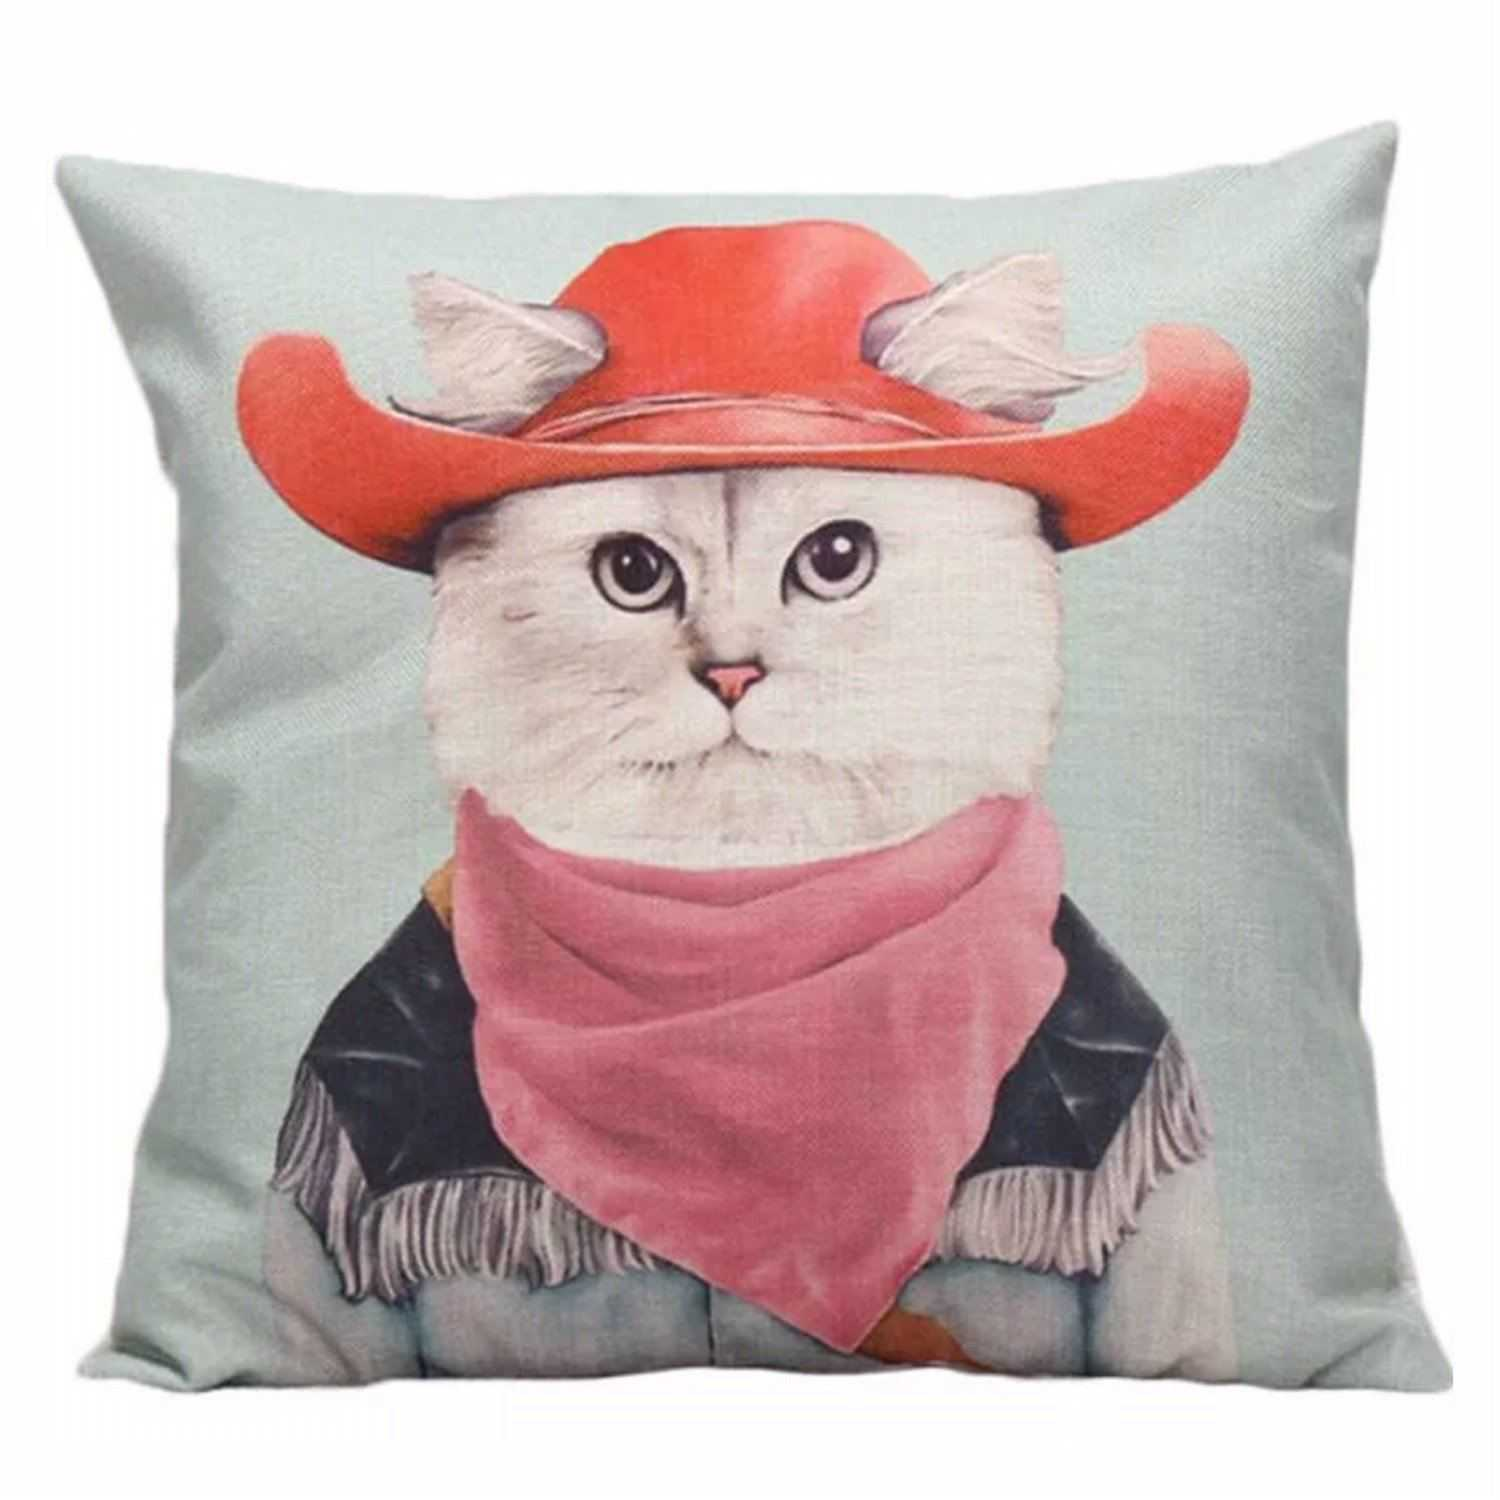 Cushion Pillow Cat Country Farm Cow Boy Hat - The Renmy Store